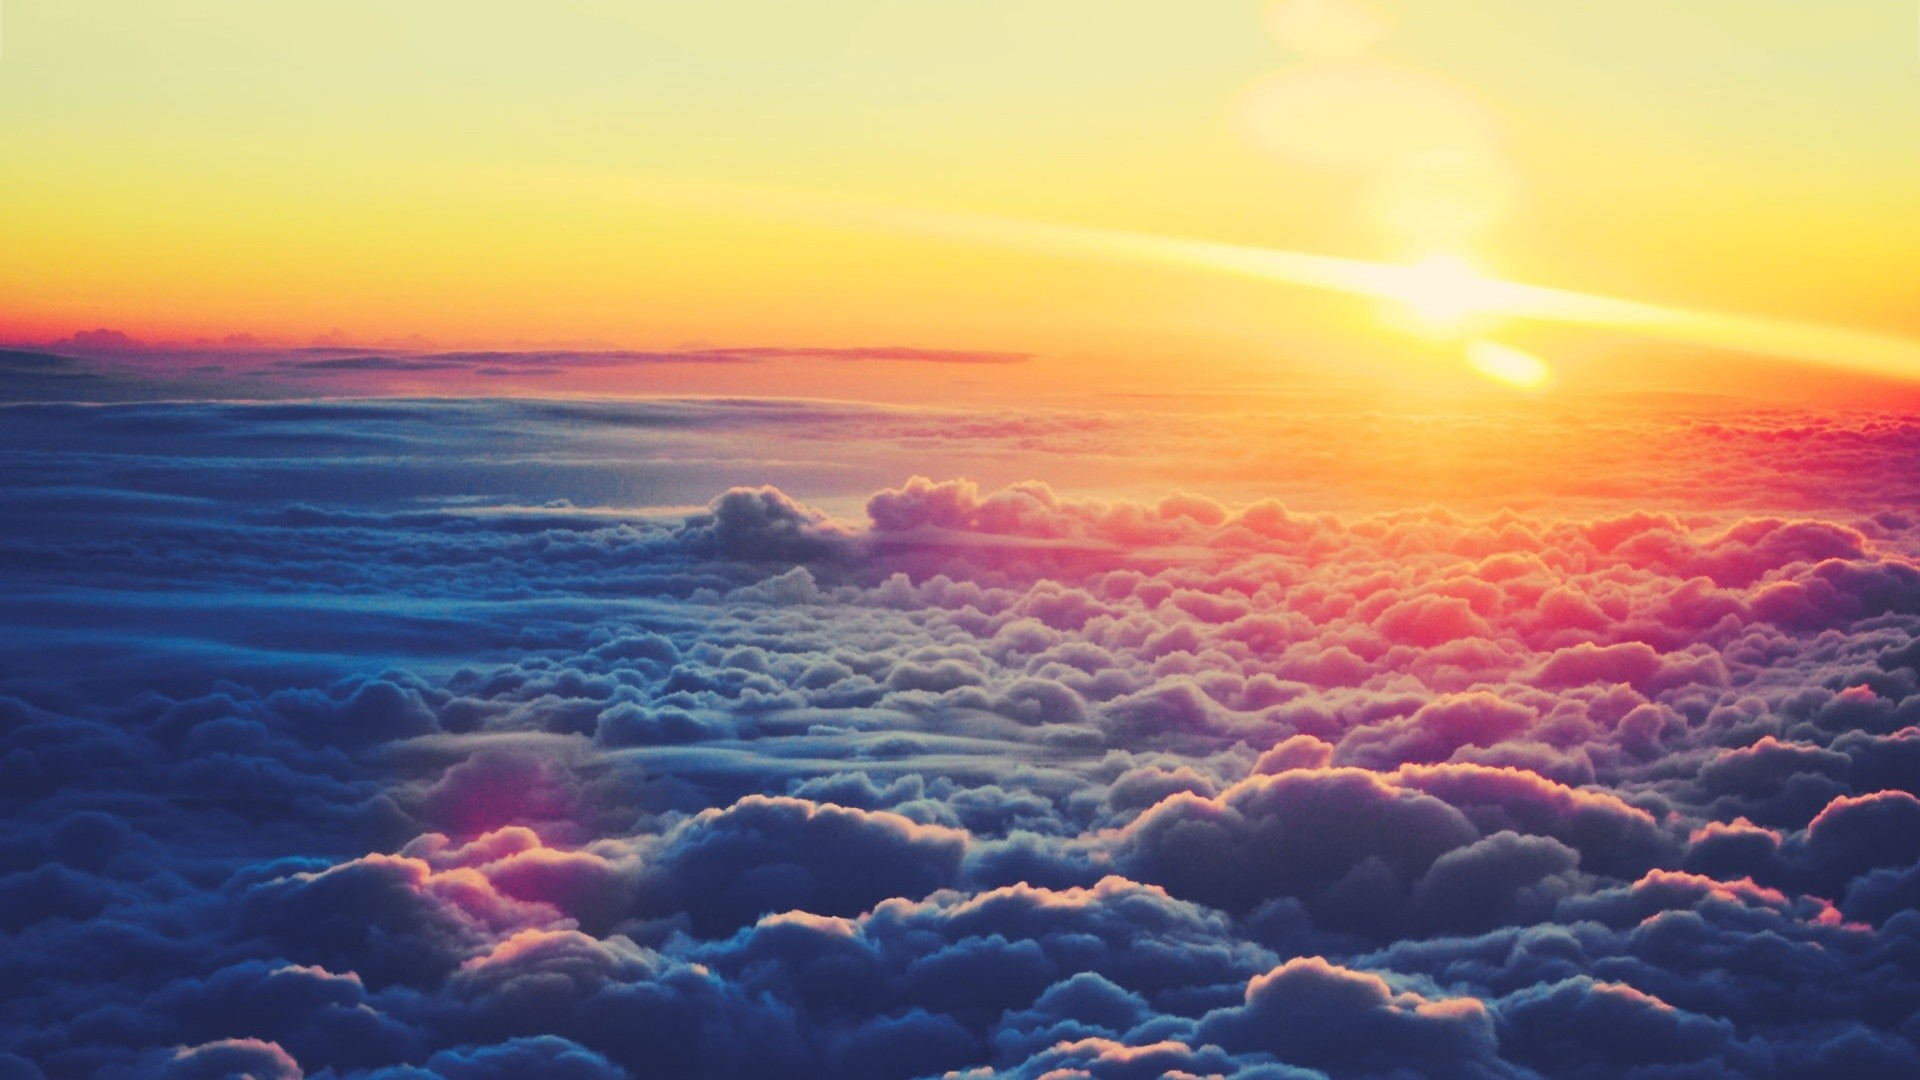 Res: 1920x1080, sunset over clouds wallpaper 1920×1080 hd wallpapers amazing cool desktop  wallpapers for windows apple mac tablet download 1920×1080 Wallpaper HD